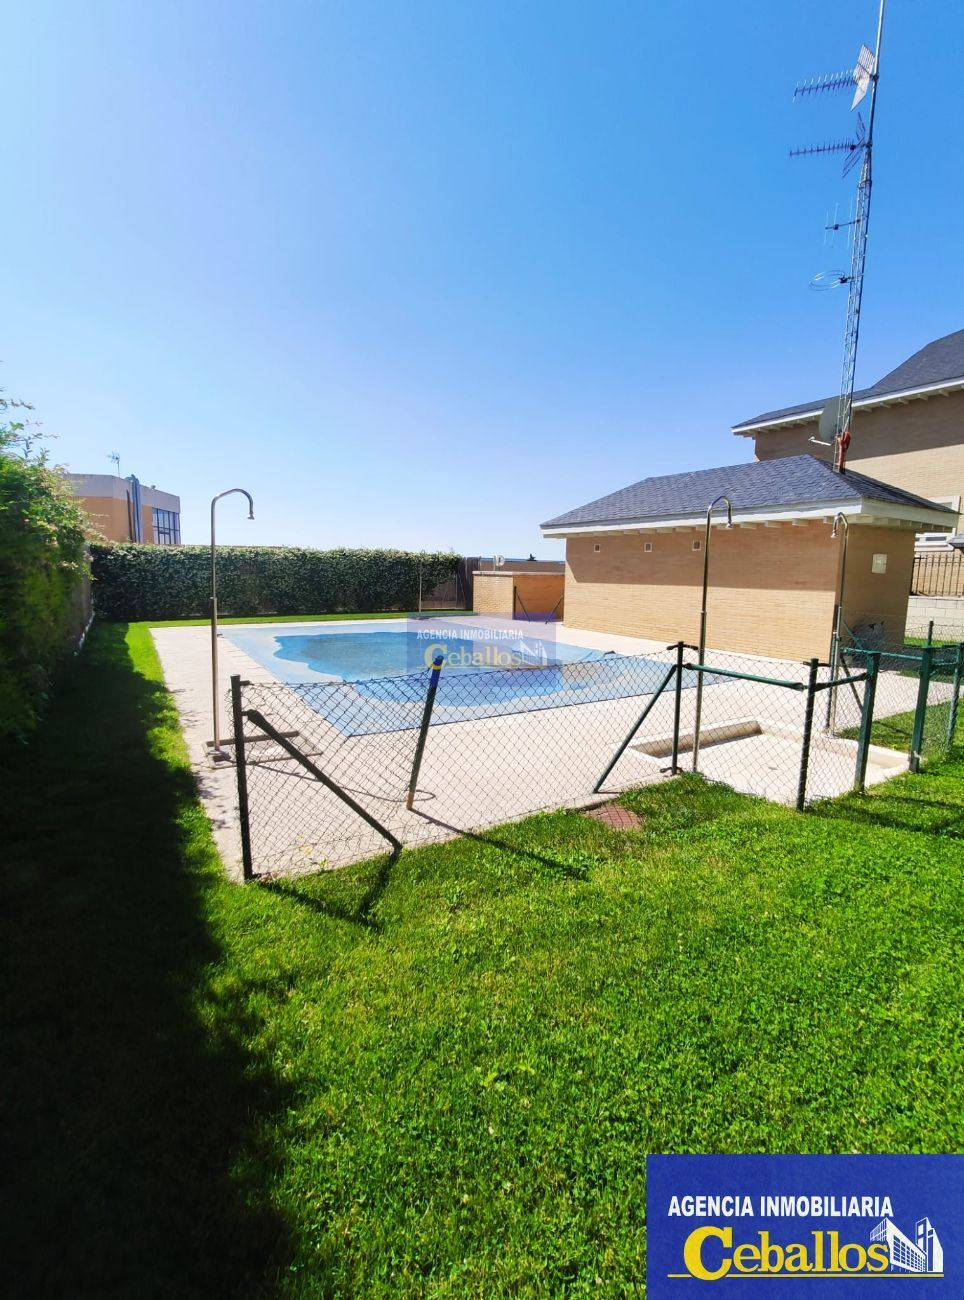 SEMI-DETACHED HOUSE in CABANILLAS DEL CAMPO